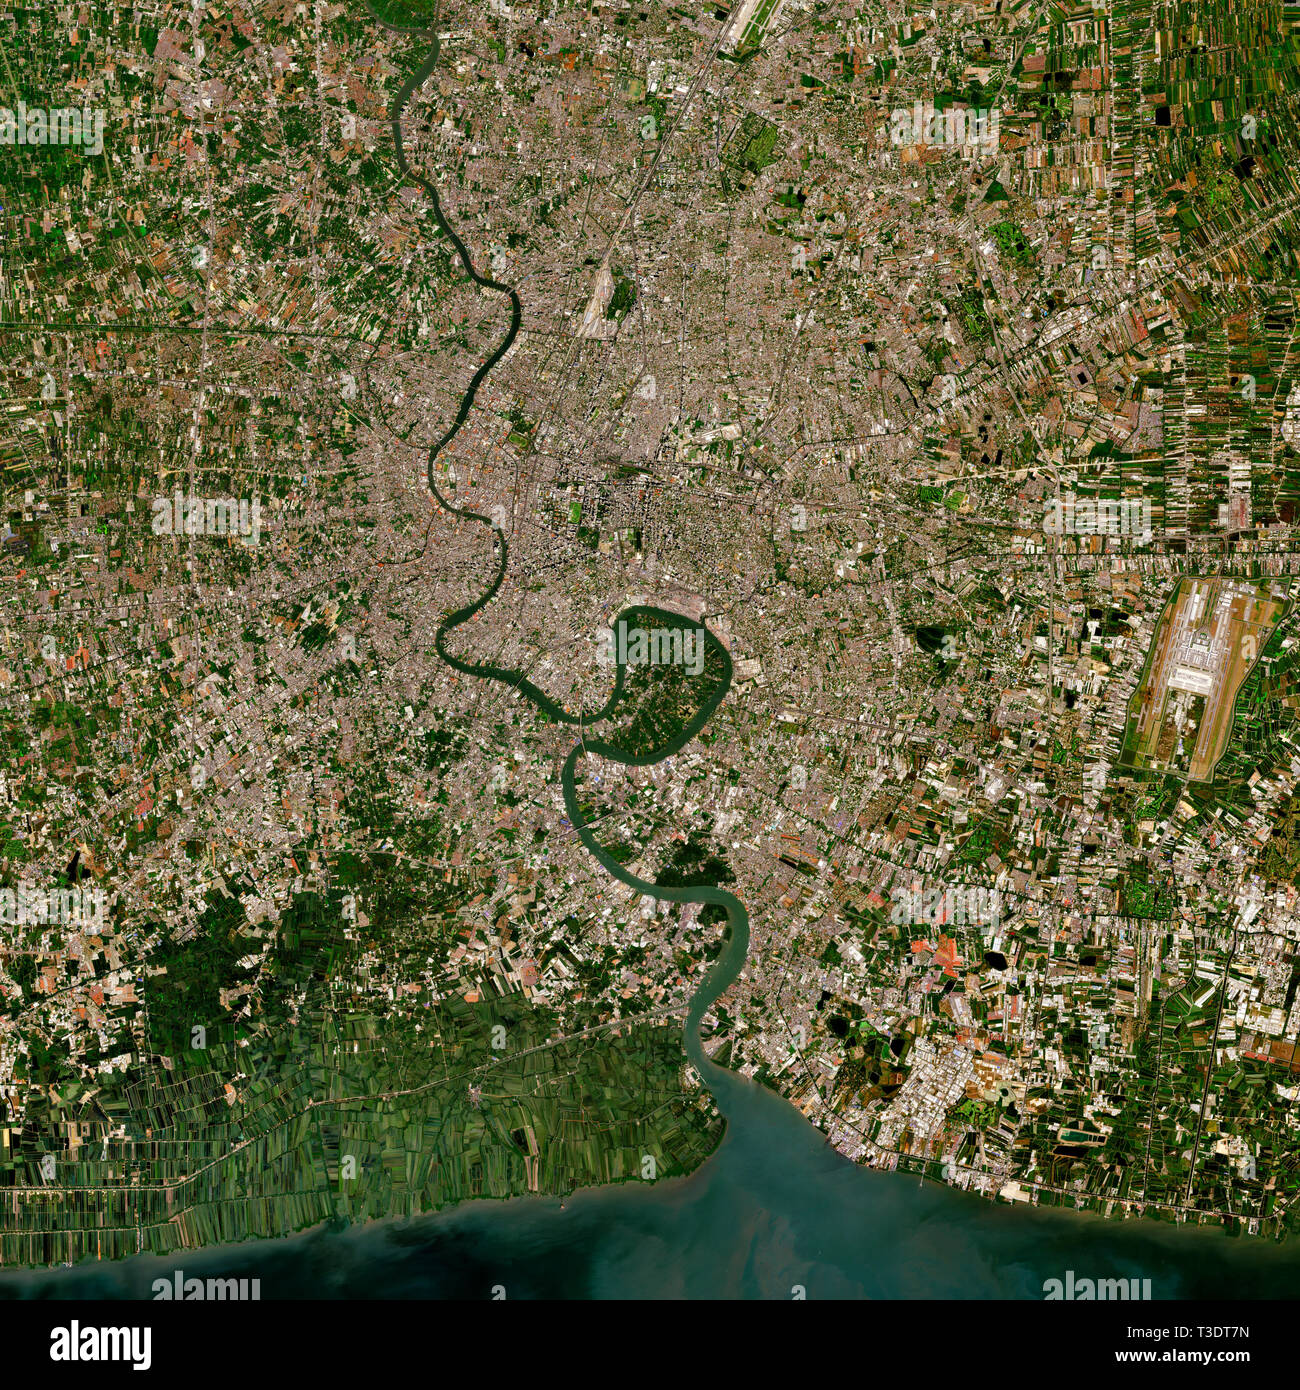 Bangkok in Thailand seen from space - contains modified Copernicus Sentinel Data (2019) Stock Photo